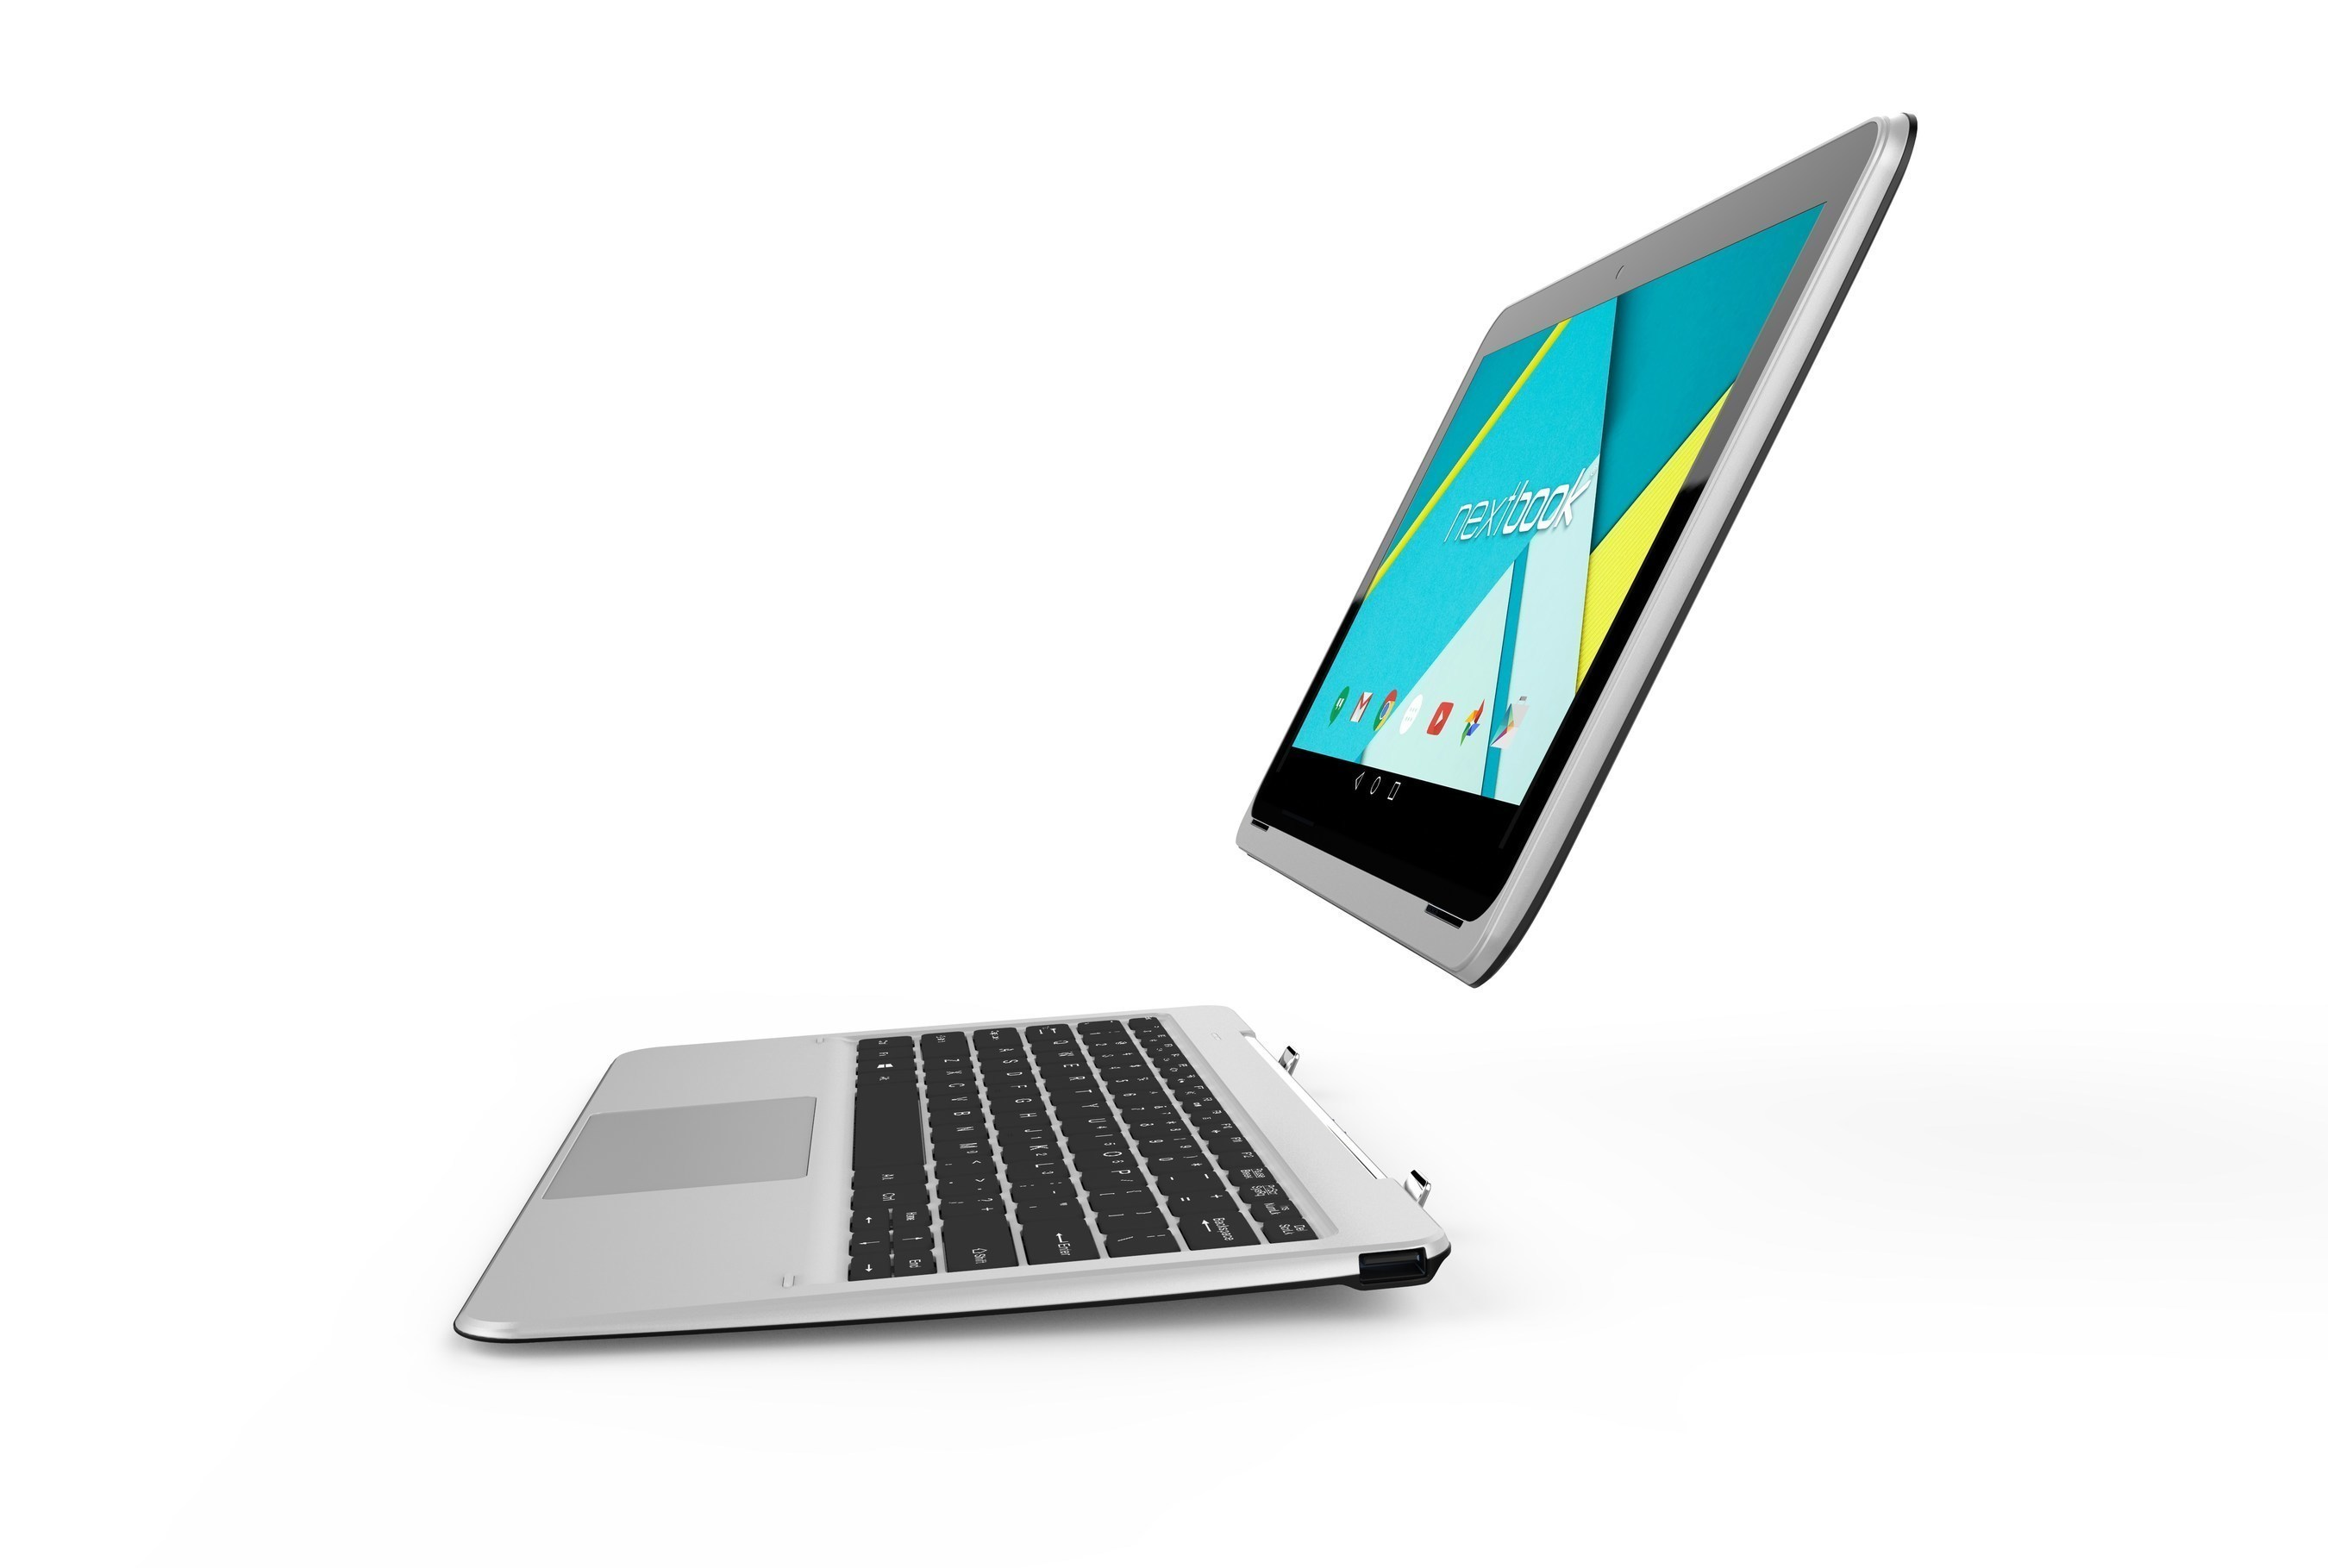 The Nextbook Ares 11A 2-in-1 Android tablet will debut at CES 2016